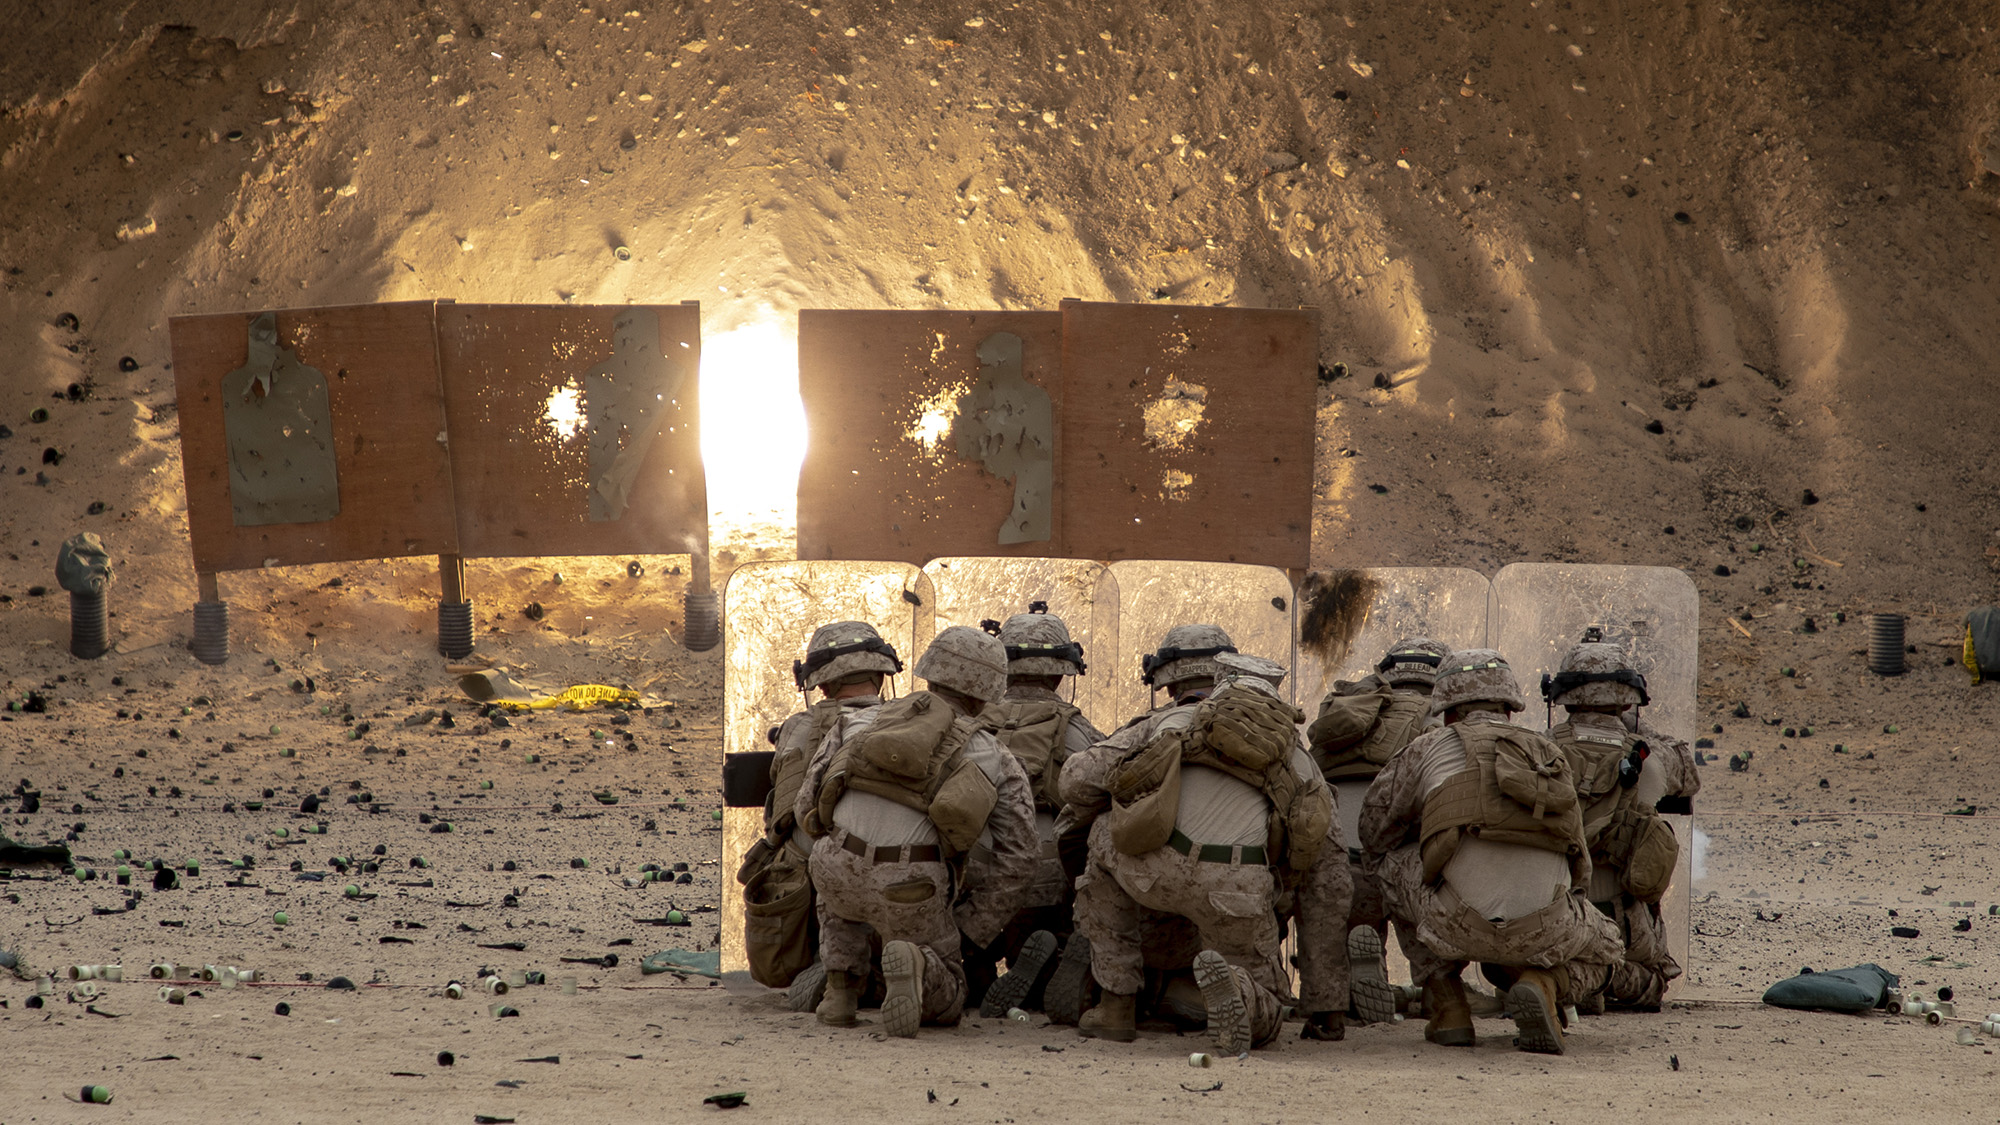 Marines with 2nd Battalion, 7th Marines, assigned to Special Purpose Marine Air-Ground Task Force – Crisis Response – Central Command (SPMAGTF-CR-CC) 19.2, take cover while throwing non-lethal grenades during a non-lethal weapons training exercise on Jan. 18, 2020, in Kuwait. (Sgt. Robert G. Gavaldon/Marine Corps)